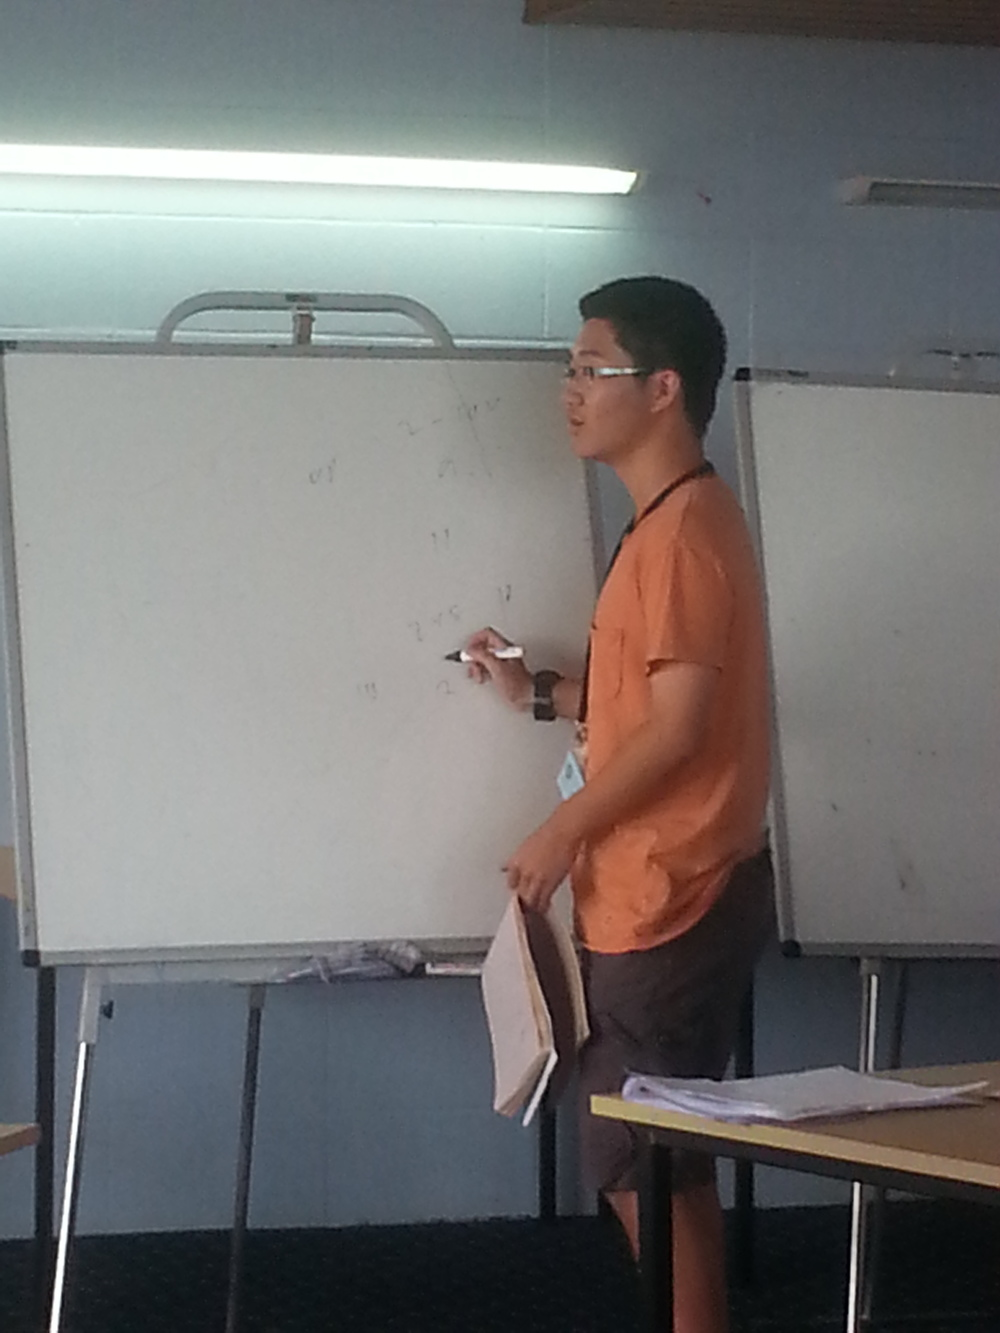 Hao Jia being brave enough to stand in front of people to show his solution